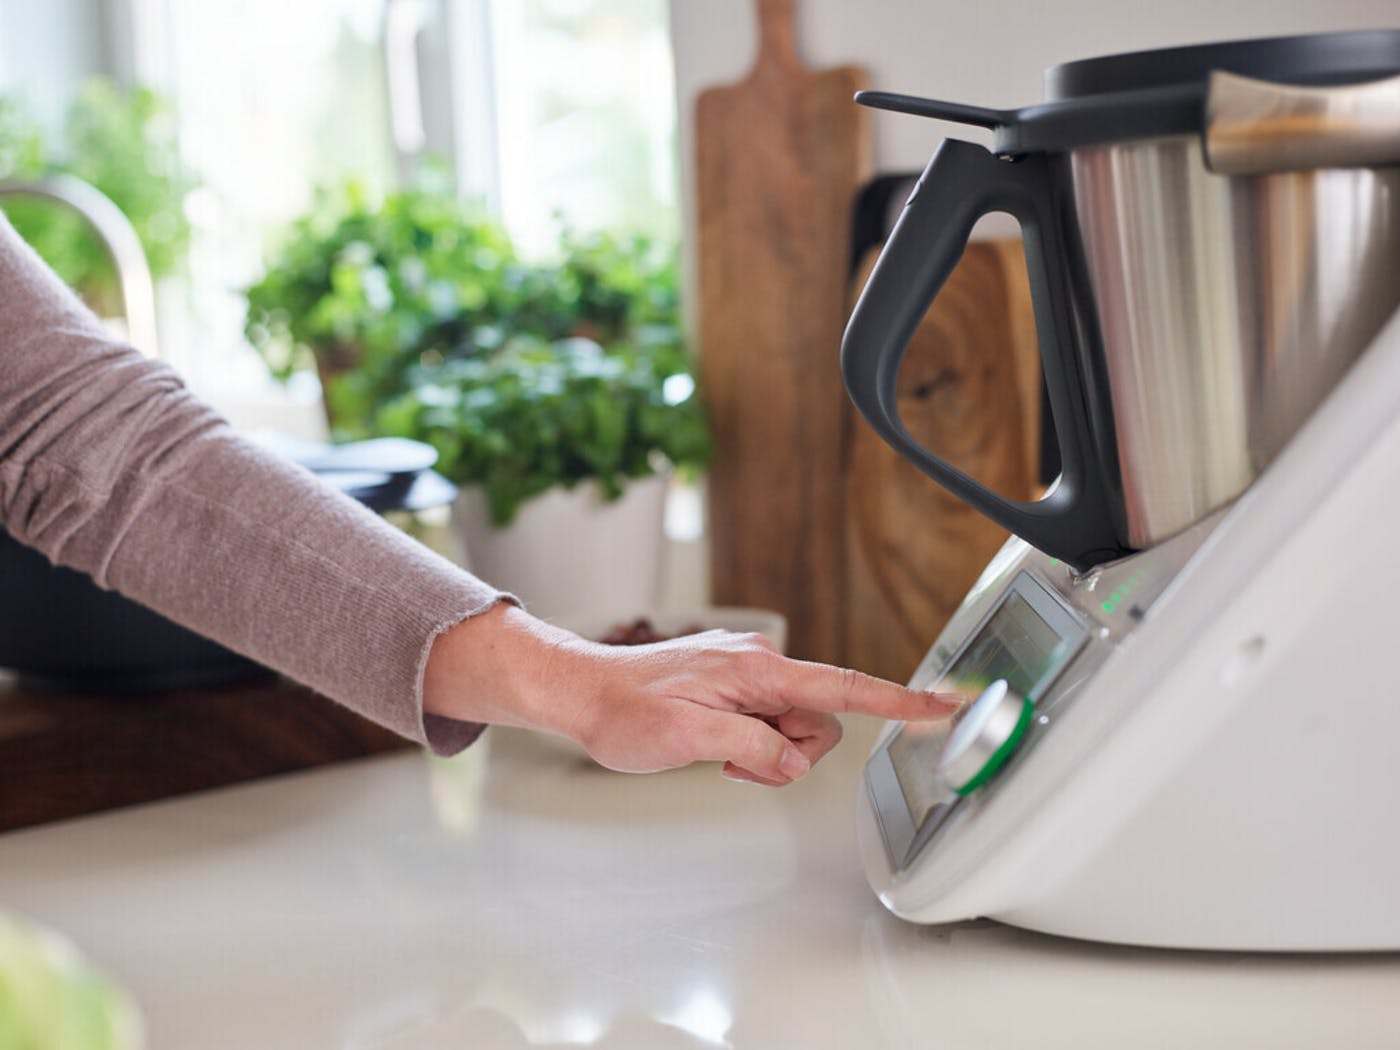 Int thermomix TM6 in use 6539475 small